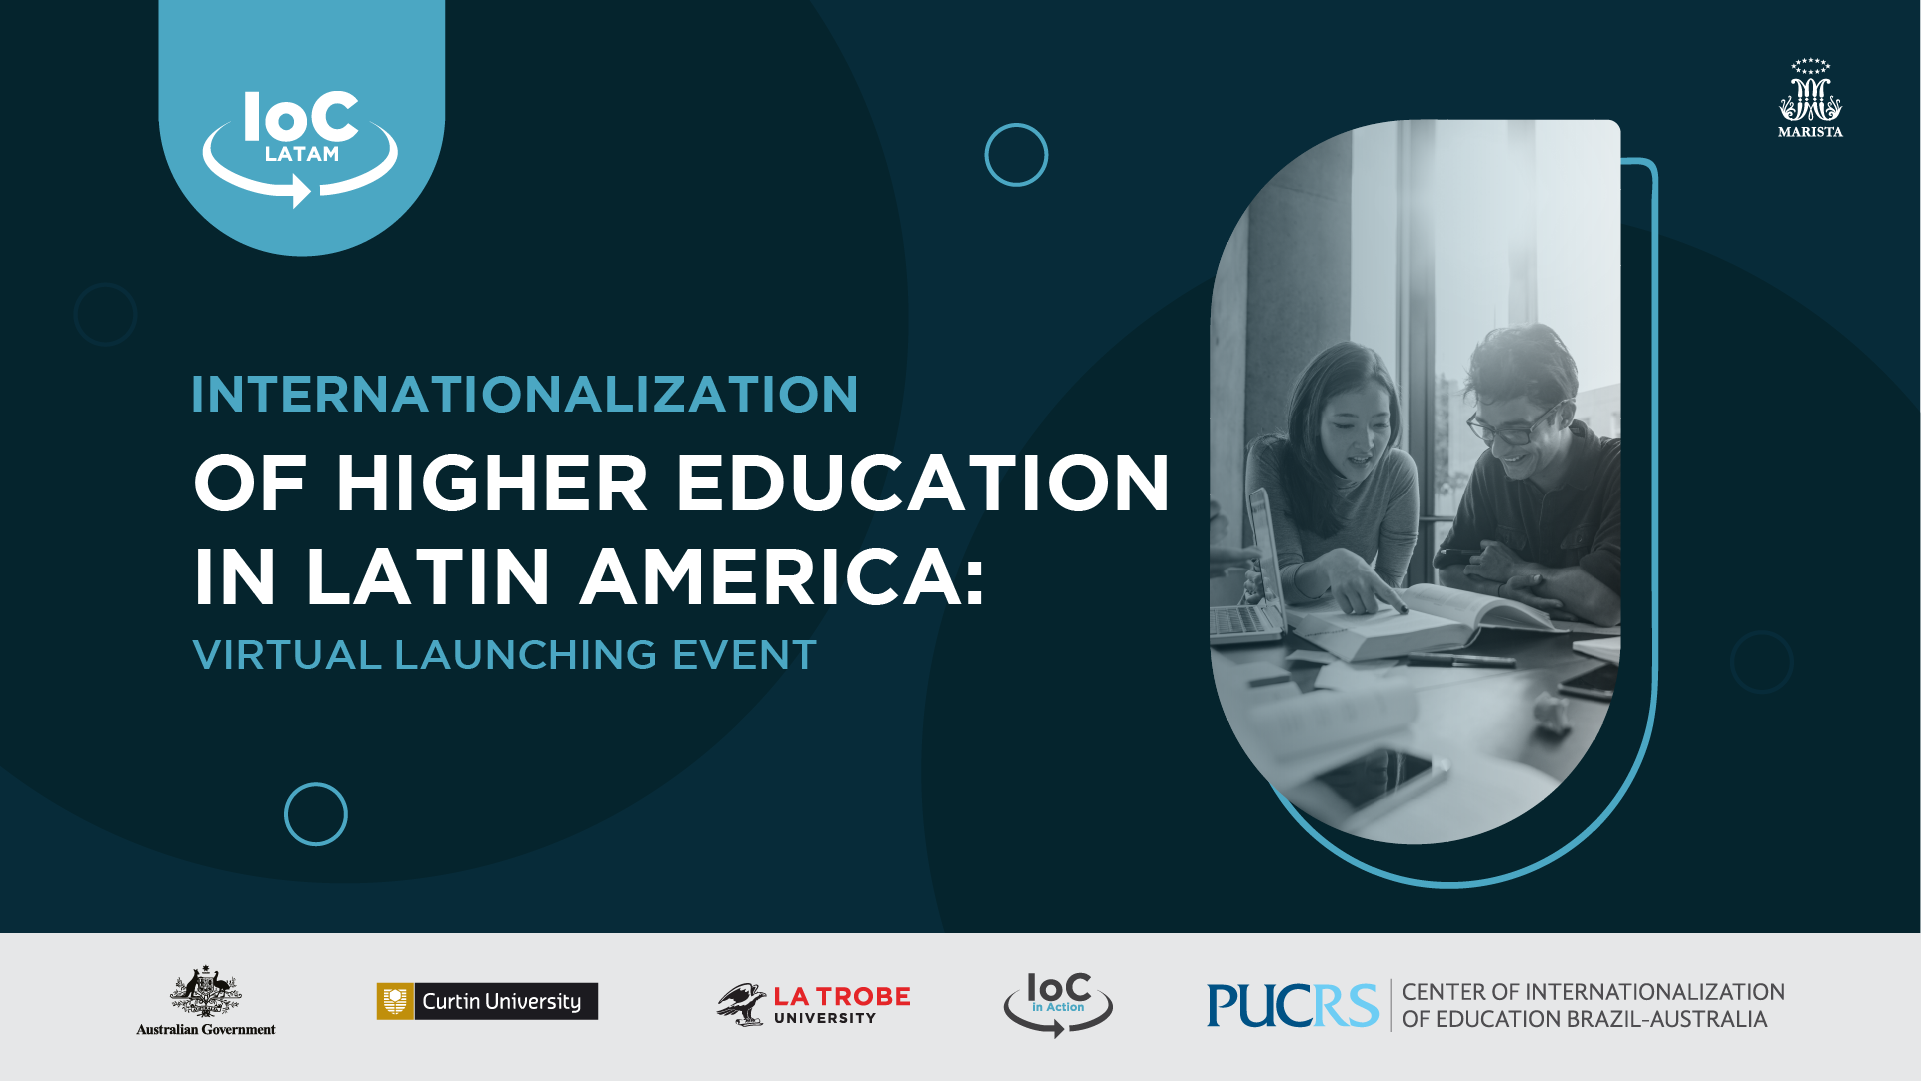 PUCRS to lead project on internationalization of higher education in Latin America